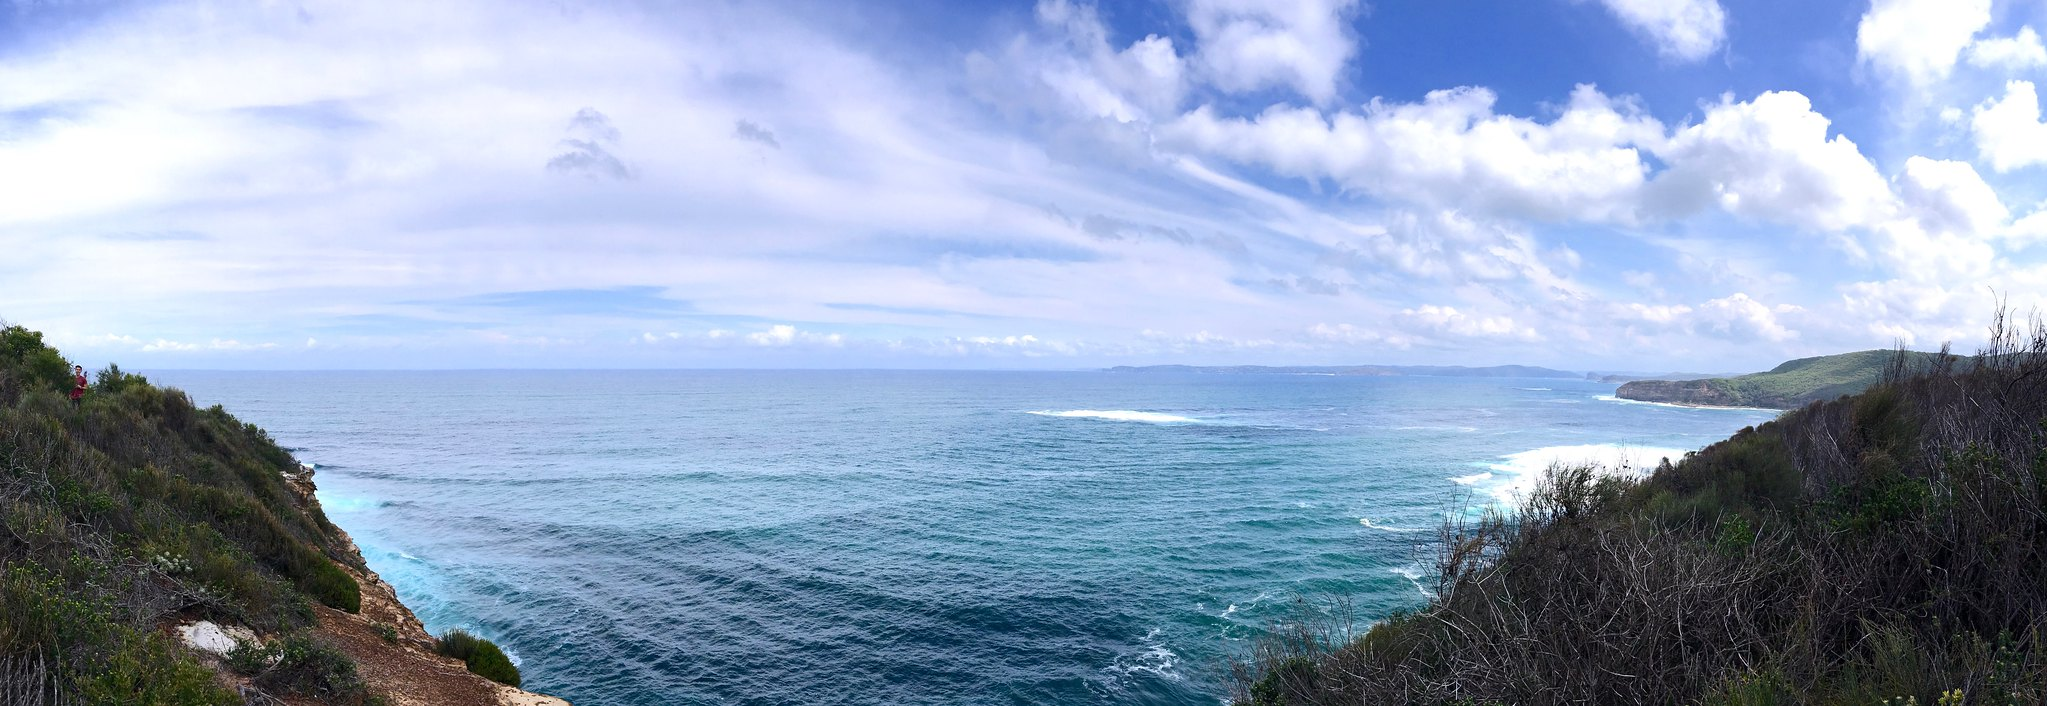 Panoramic view of Pacific Ocean from Bouddi National Park